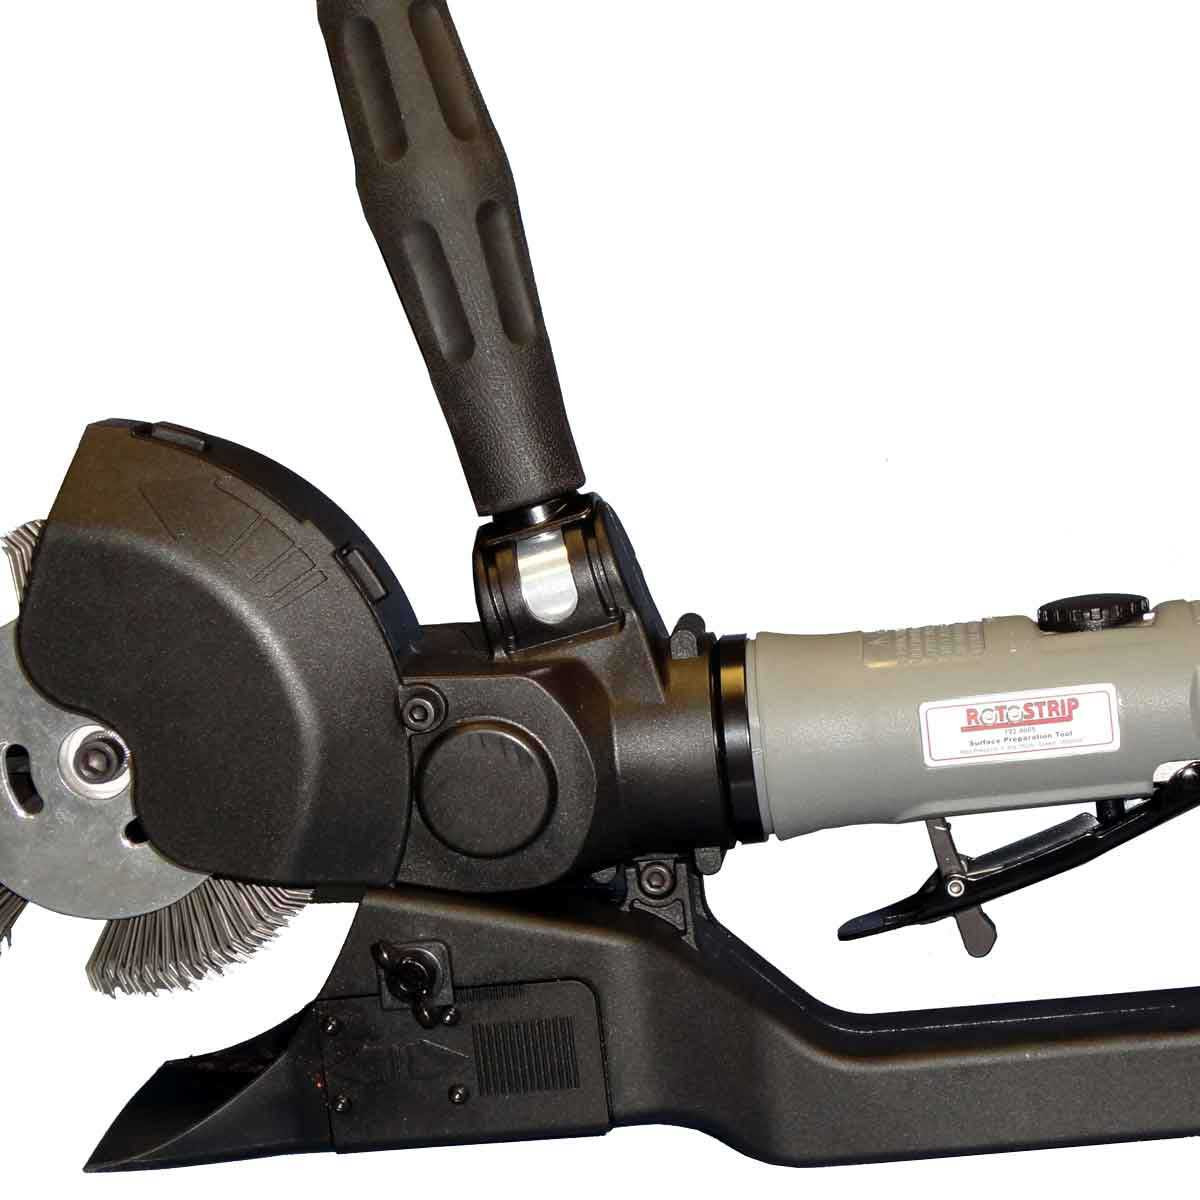 Novatek RotoStrip Air Tool head